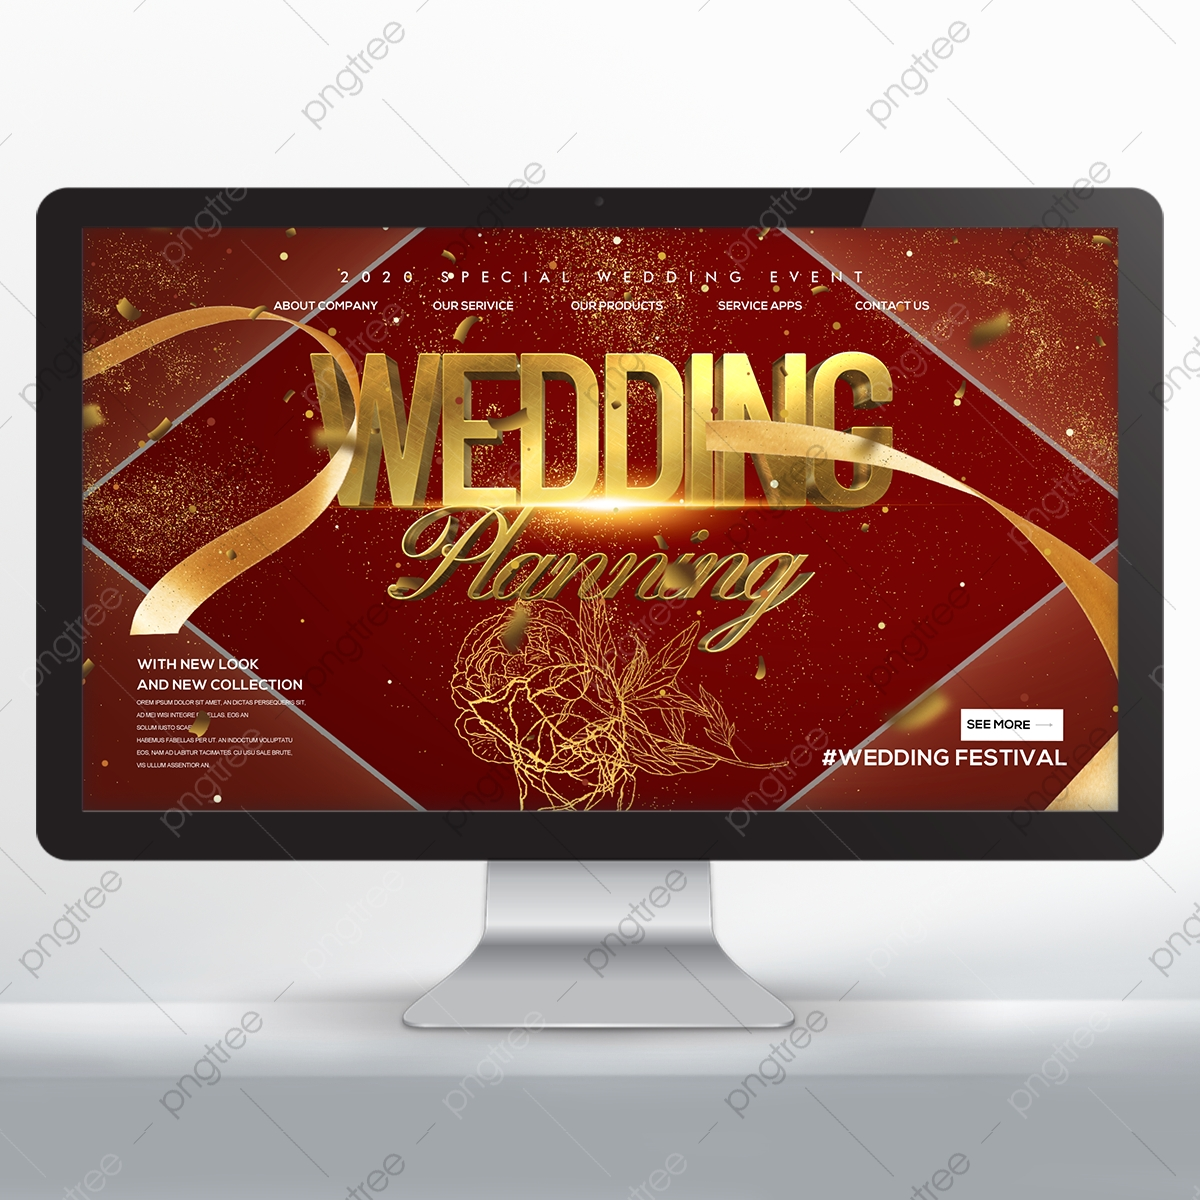 wedding banner png images vector and psd files free download on pngtree https pngtree com freepng fashion beautiful golden hand painted rose theme web wedding banner 5440466 html